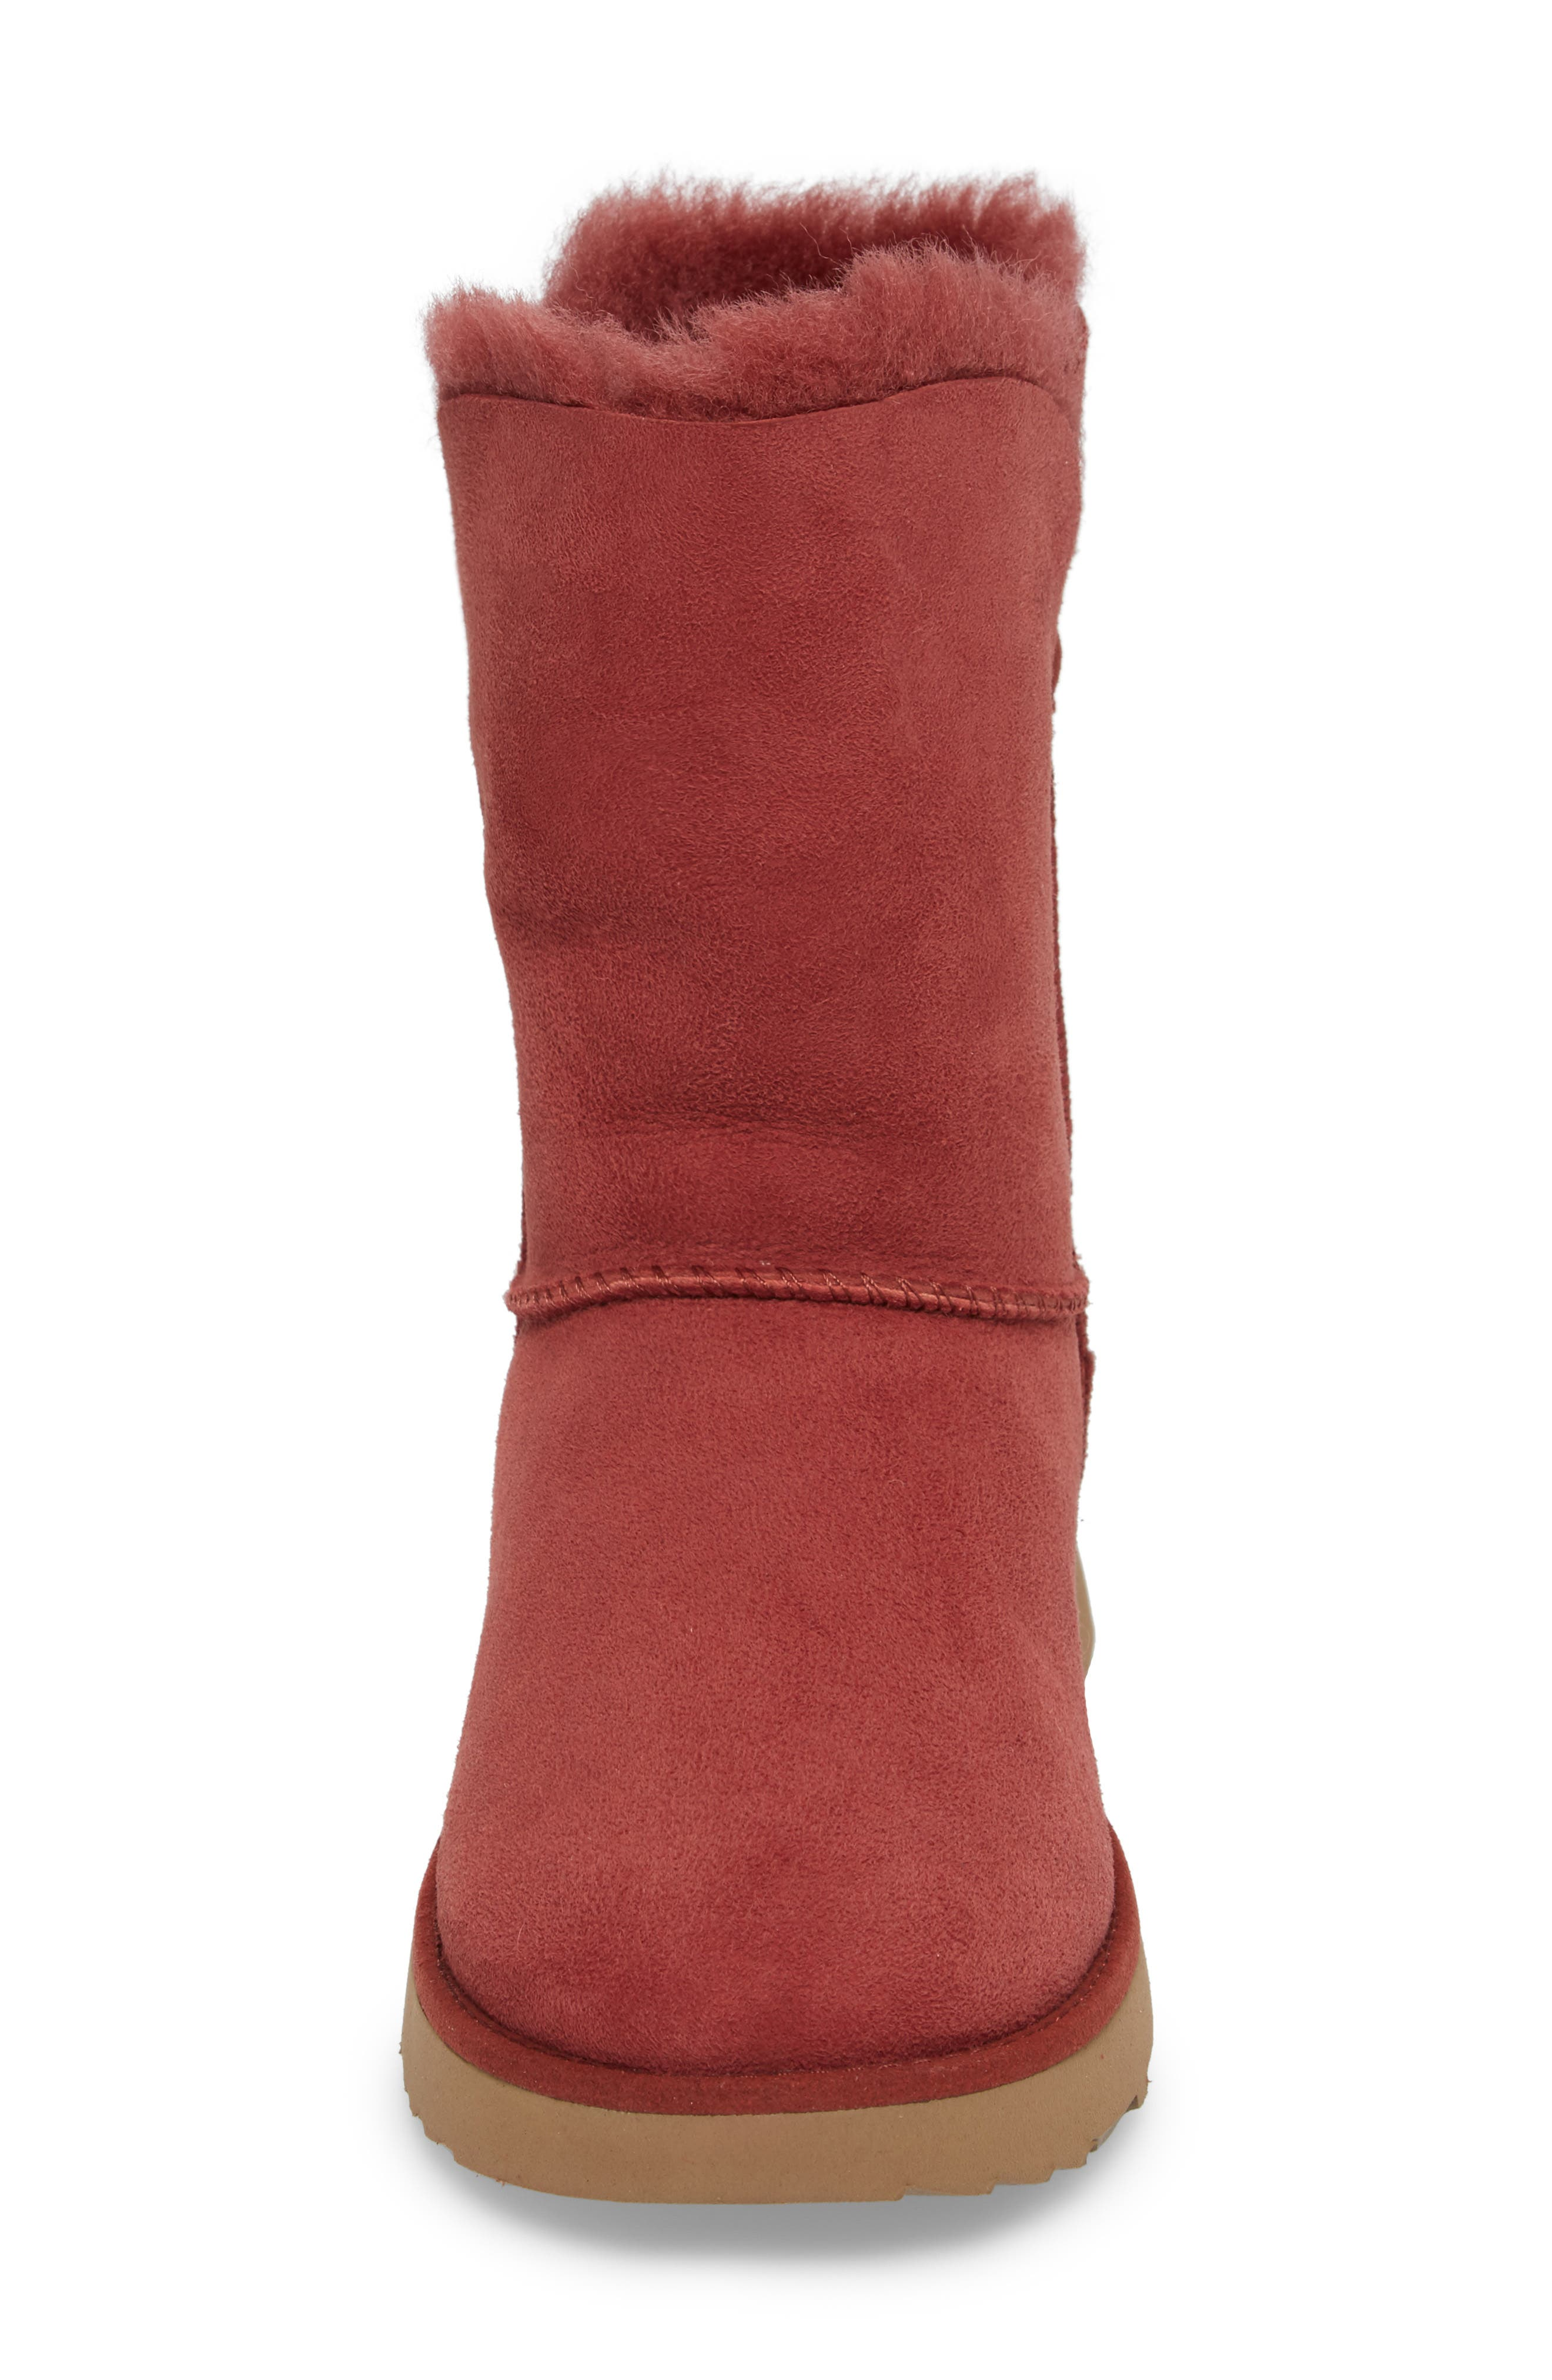 Classic Cuff Short Boot,                             Alternate thumbnail 4, color,                             Red Clay Suede